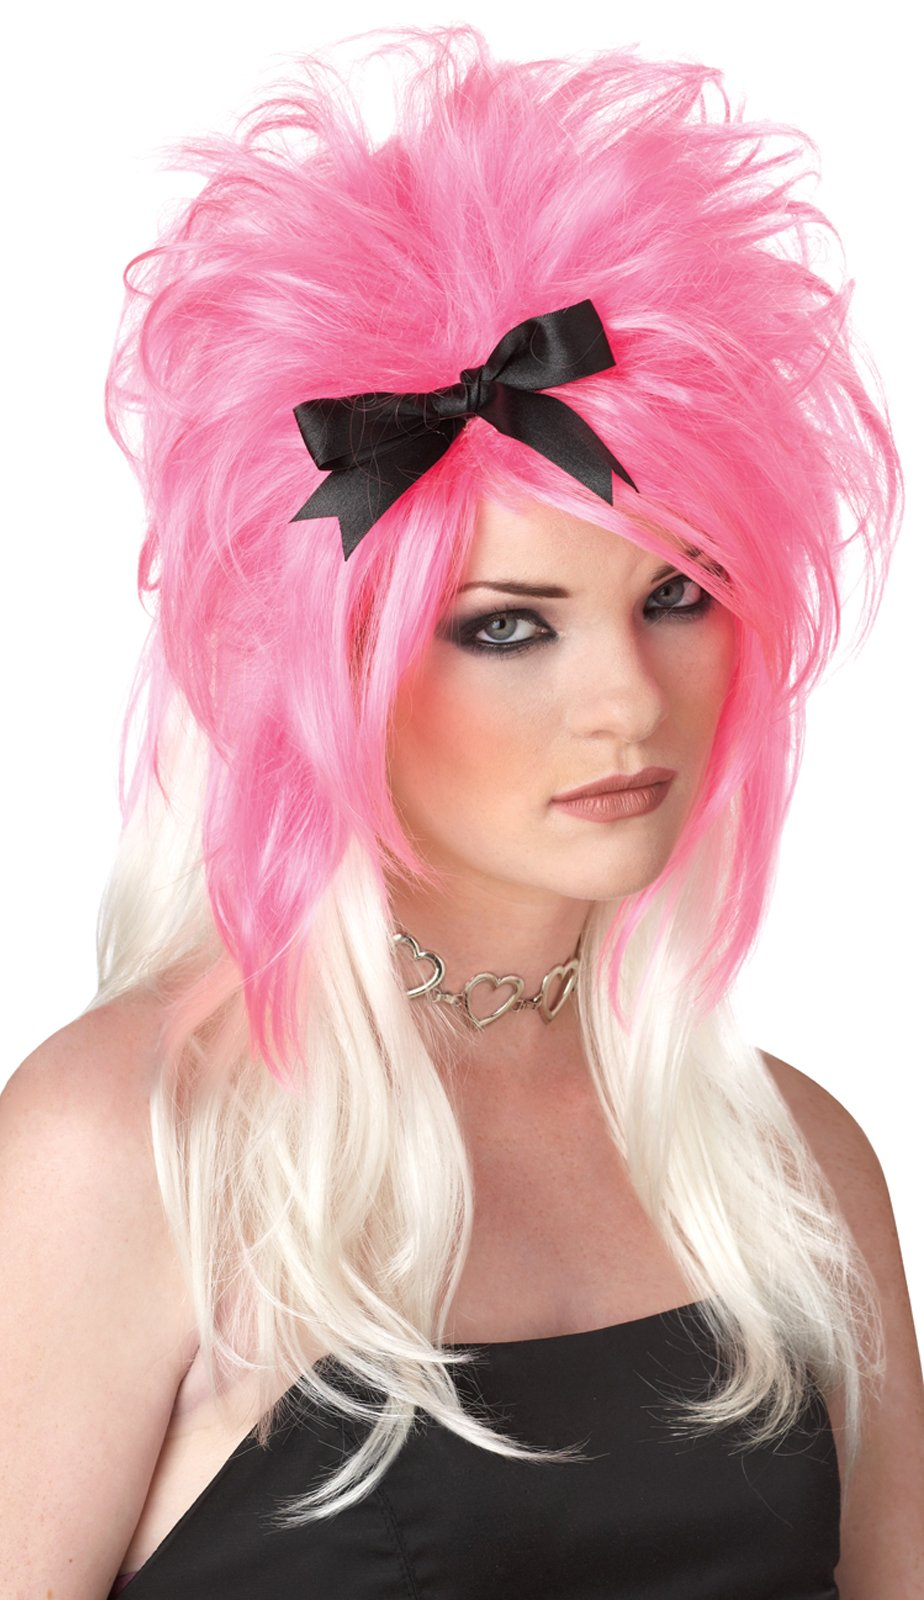 Get Over It (Pink / White) Adult Wig